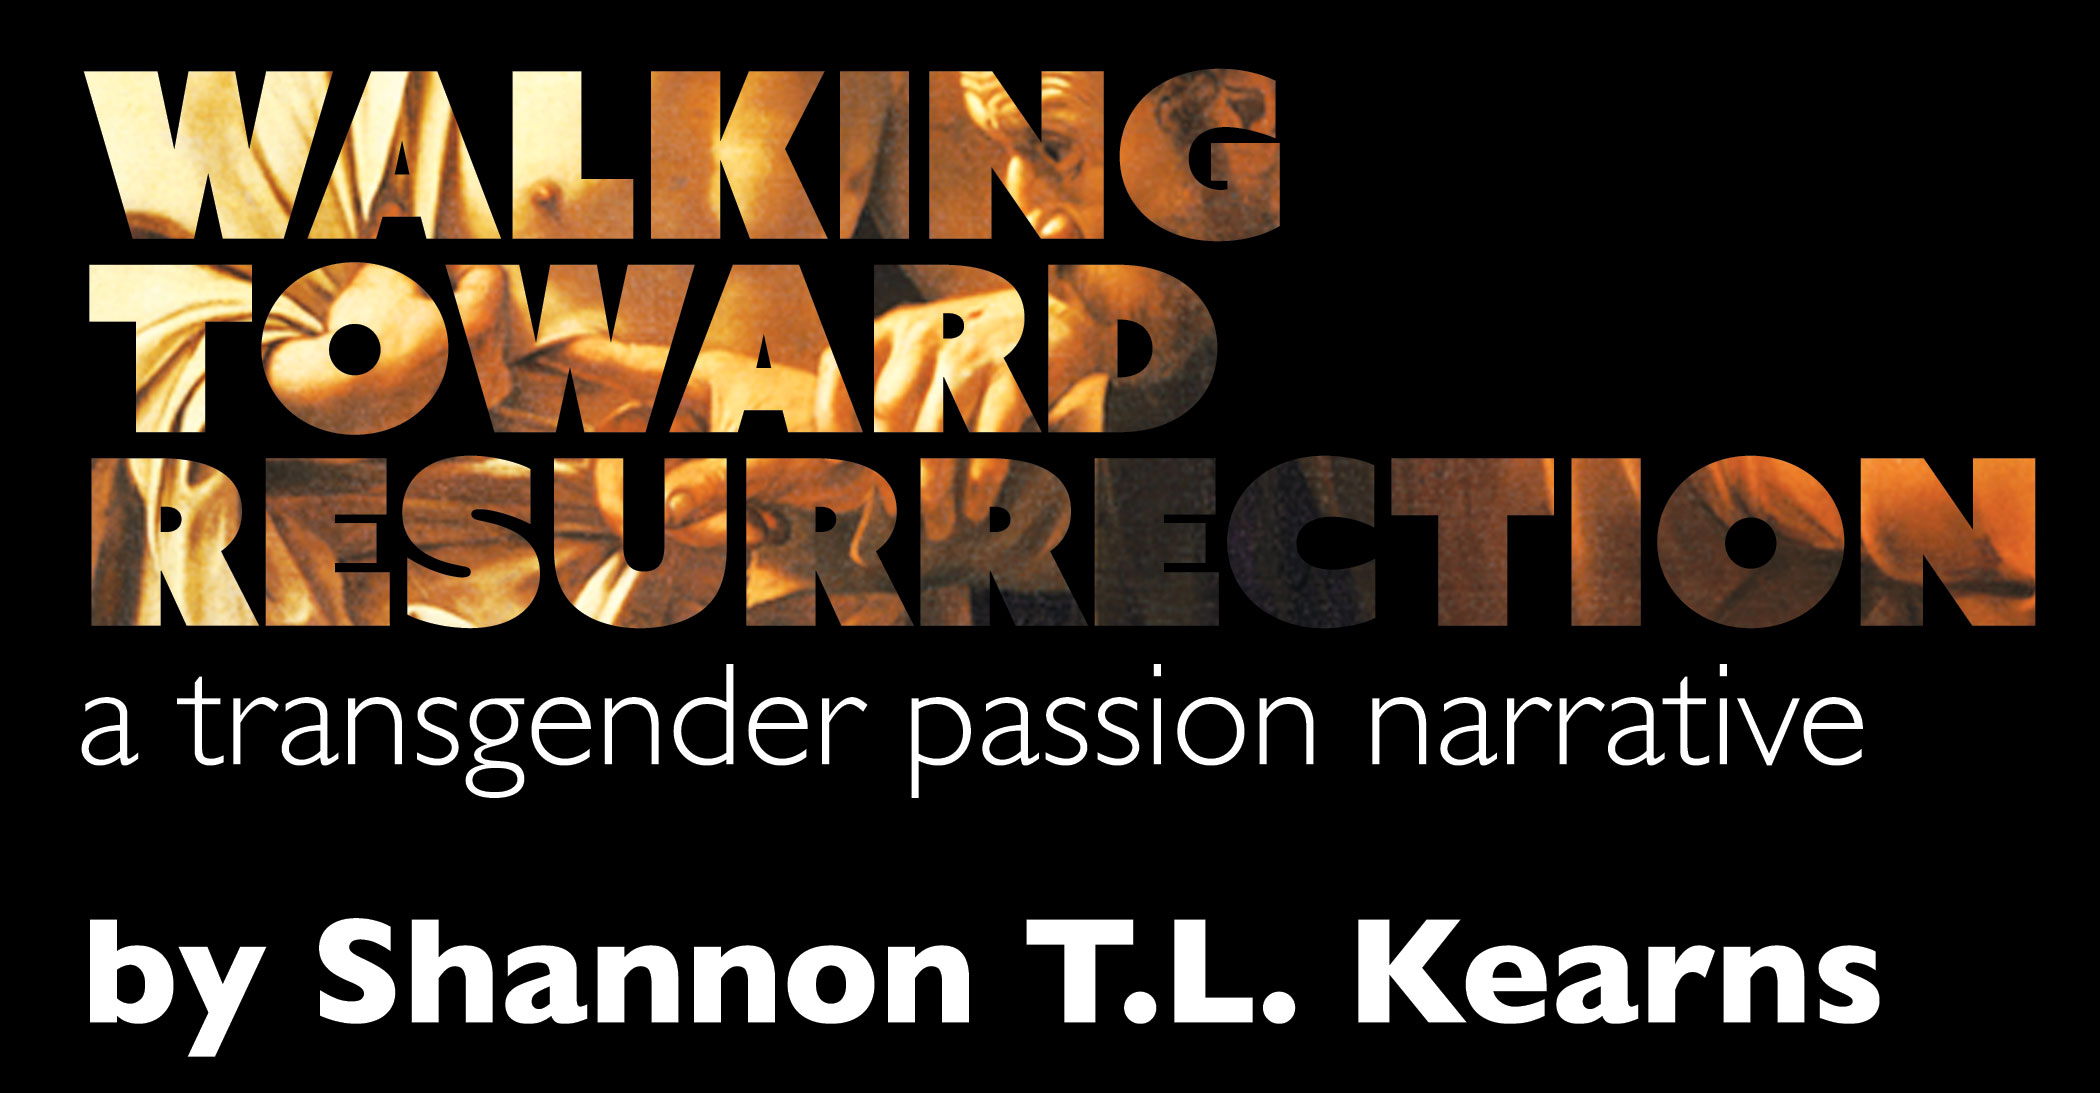 Transgender Passion Narrative Ebook: Cover Reveal and Contest